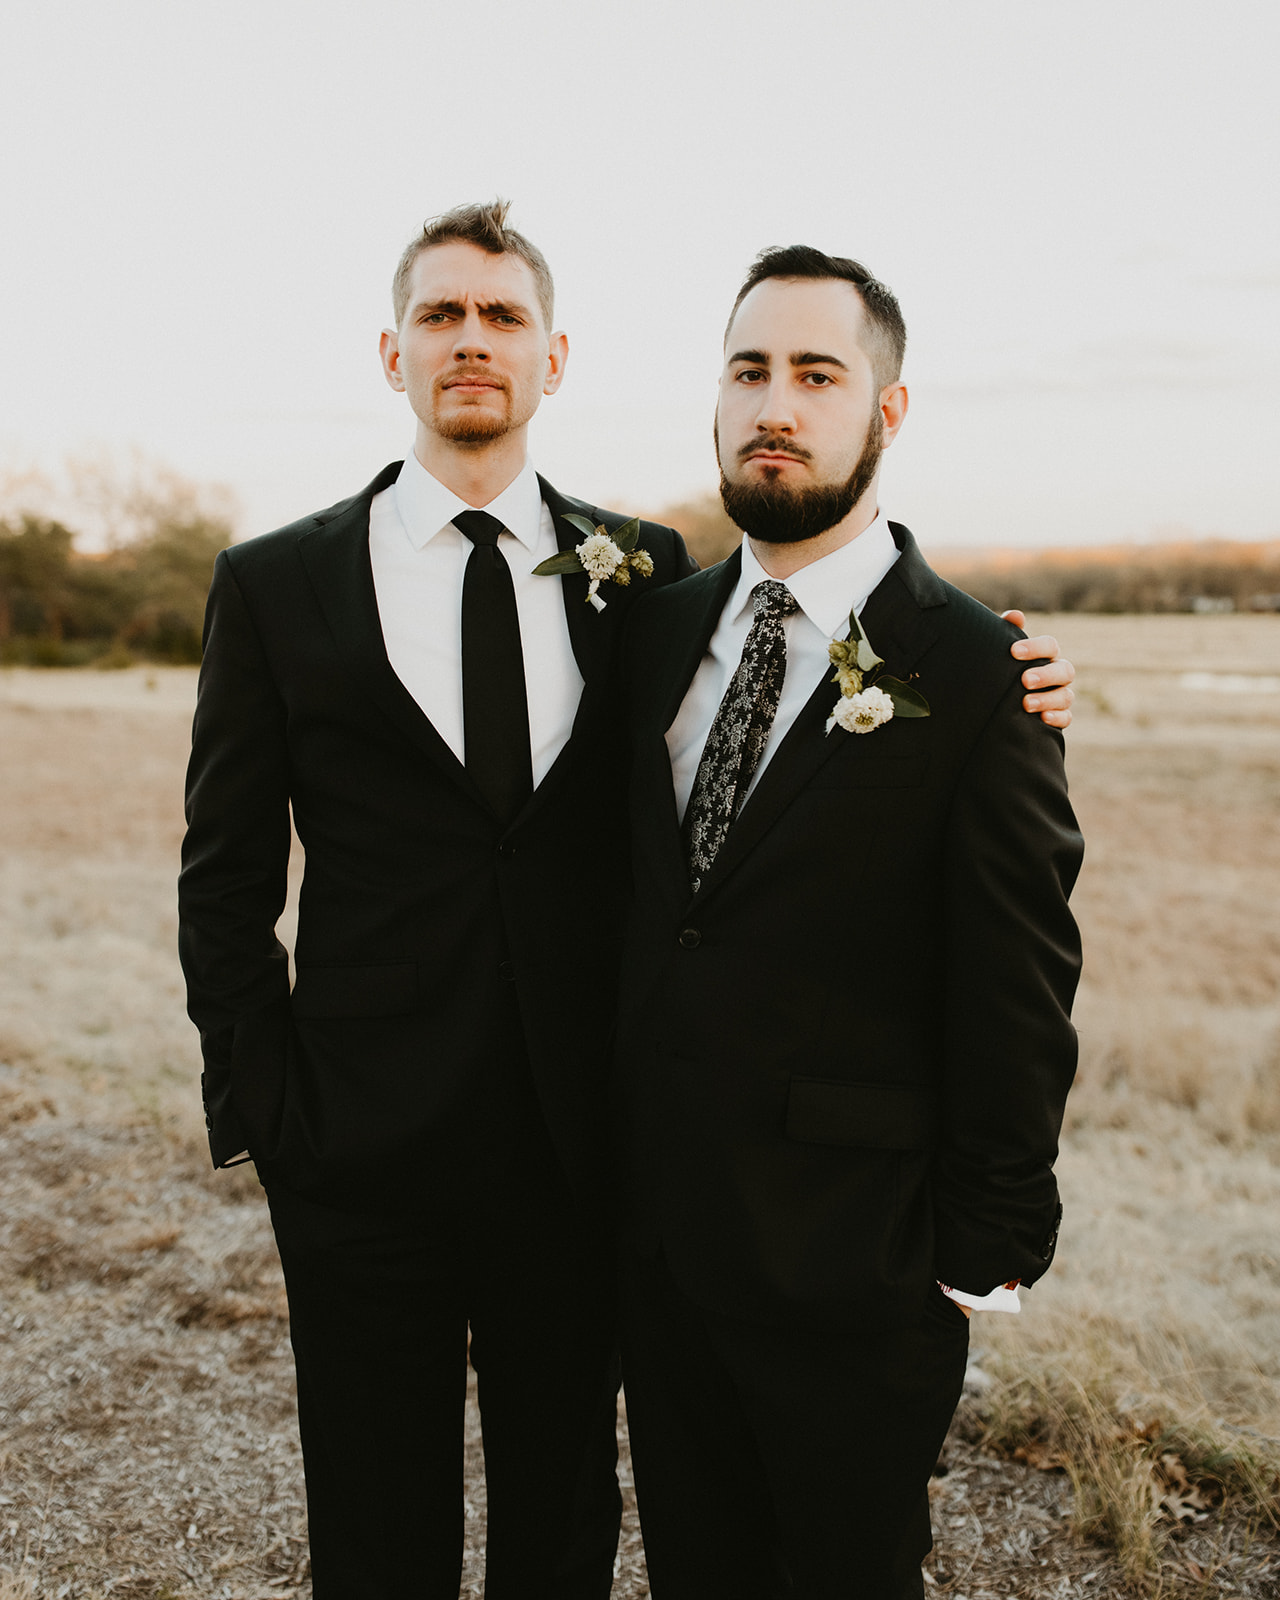 Groom Attire Suit + Floral Tie + Boutonnière with hops + poses + black + austin wedding venue prospect house + austin wedding planner epoch co